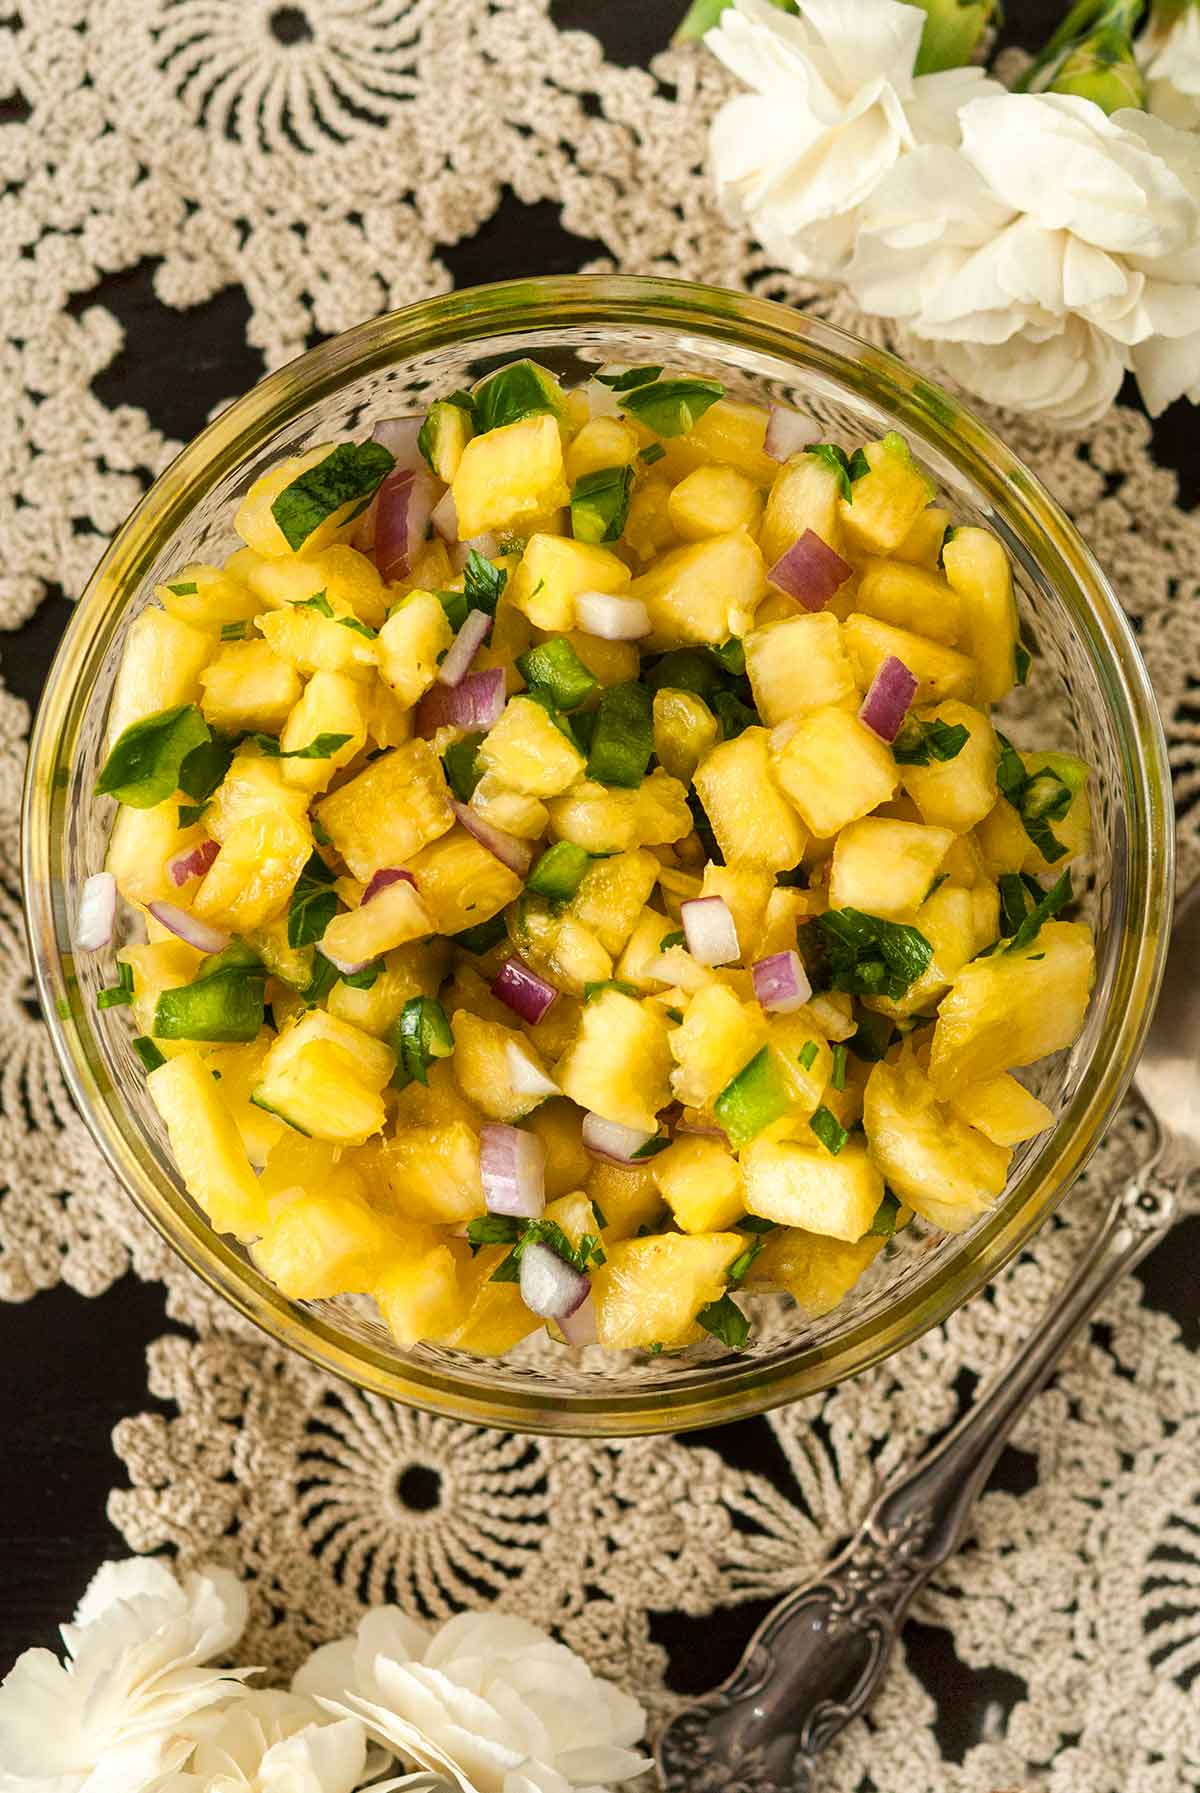 Pineapple jalapeño salsa in a small bowl on a lace tablecloth, beside a spoon and 2 small bunches of flowers.